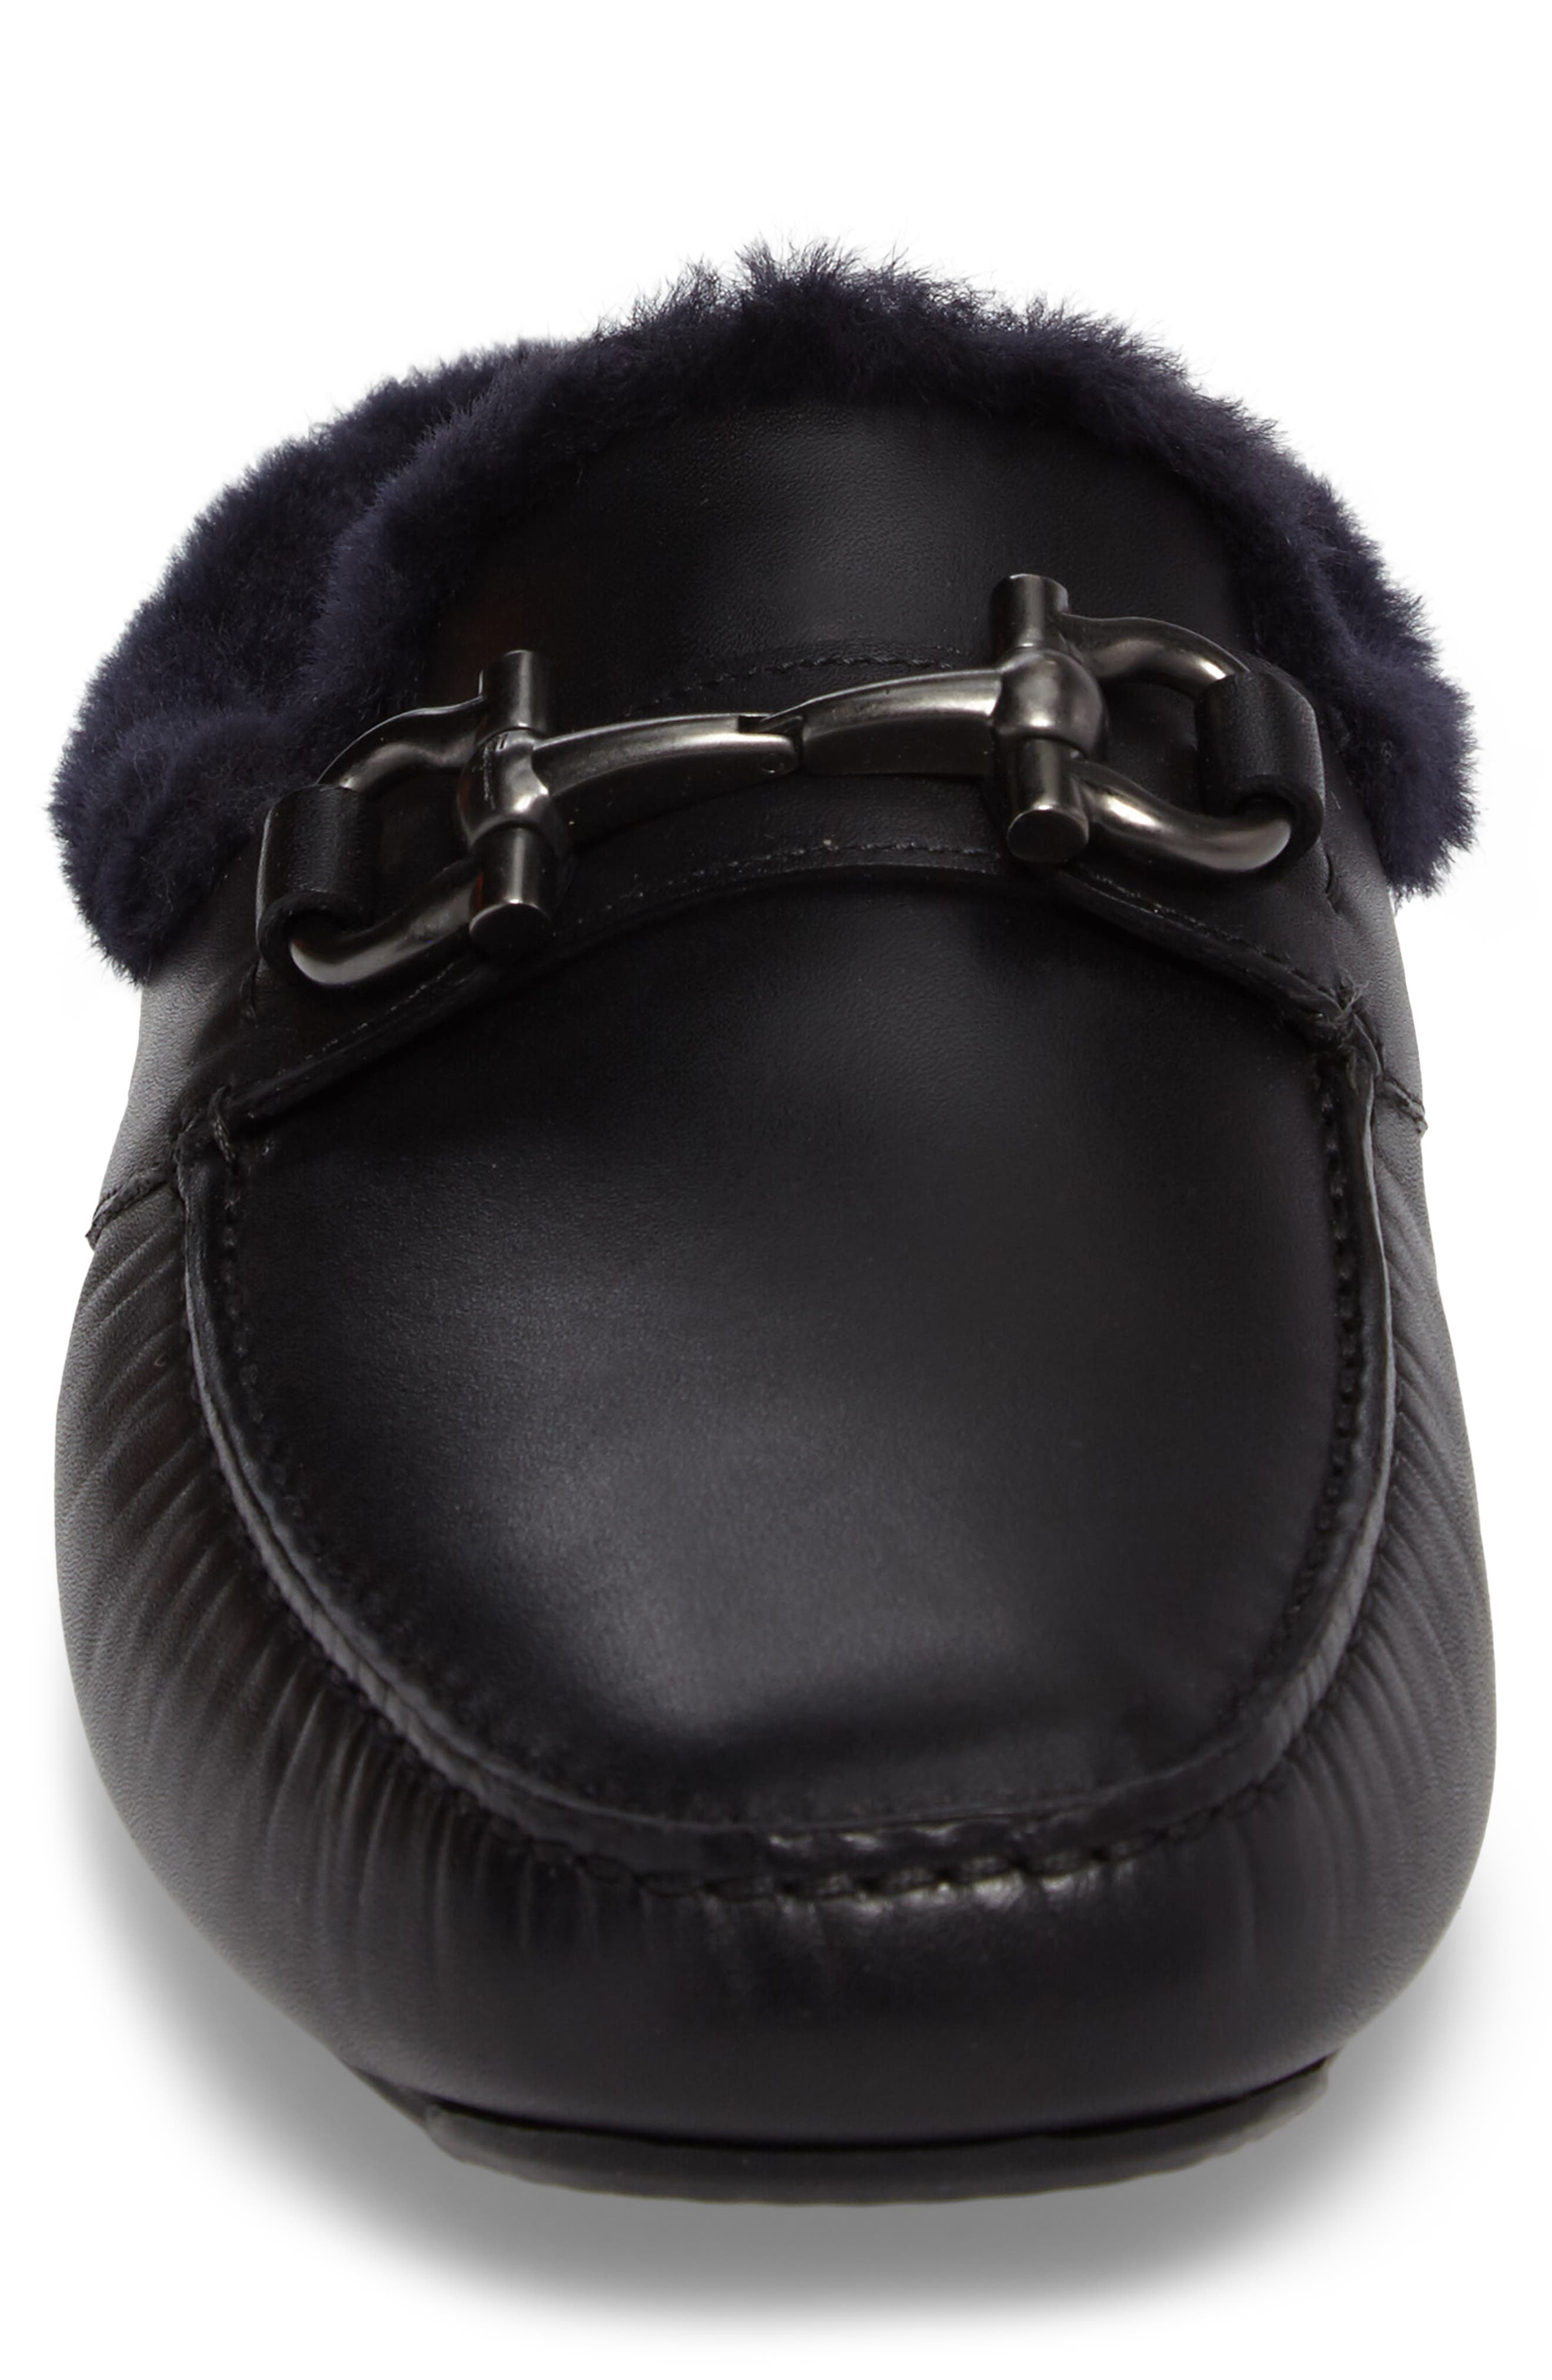 Driving Loafer with Genuine Shearling,                             Alternate thumbnail 4, color,                             001